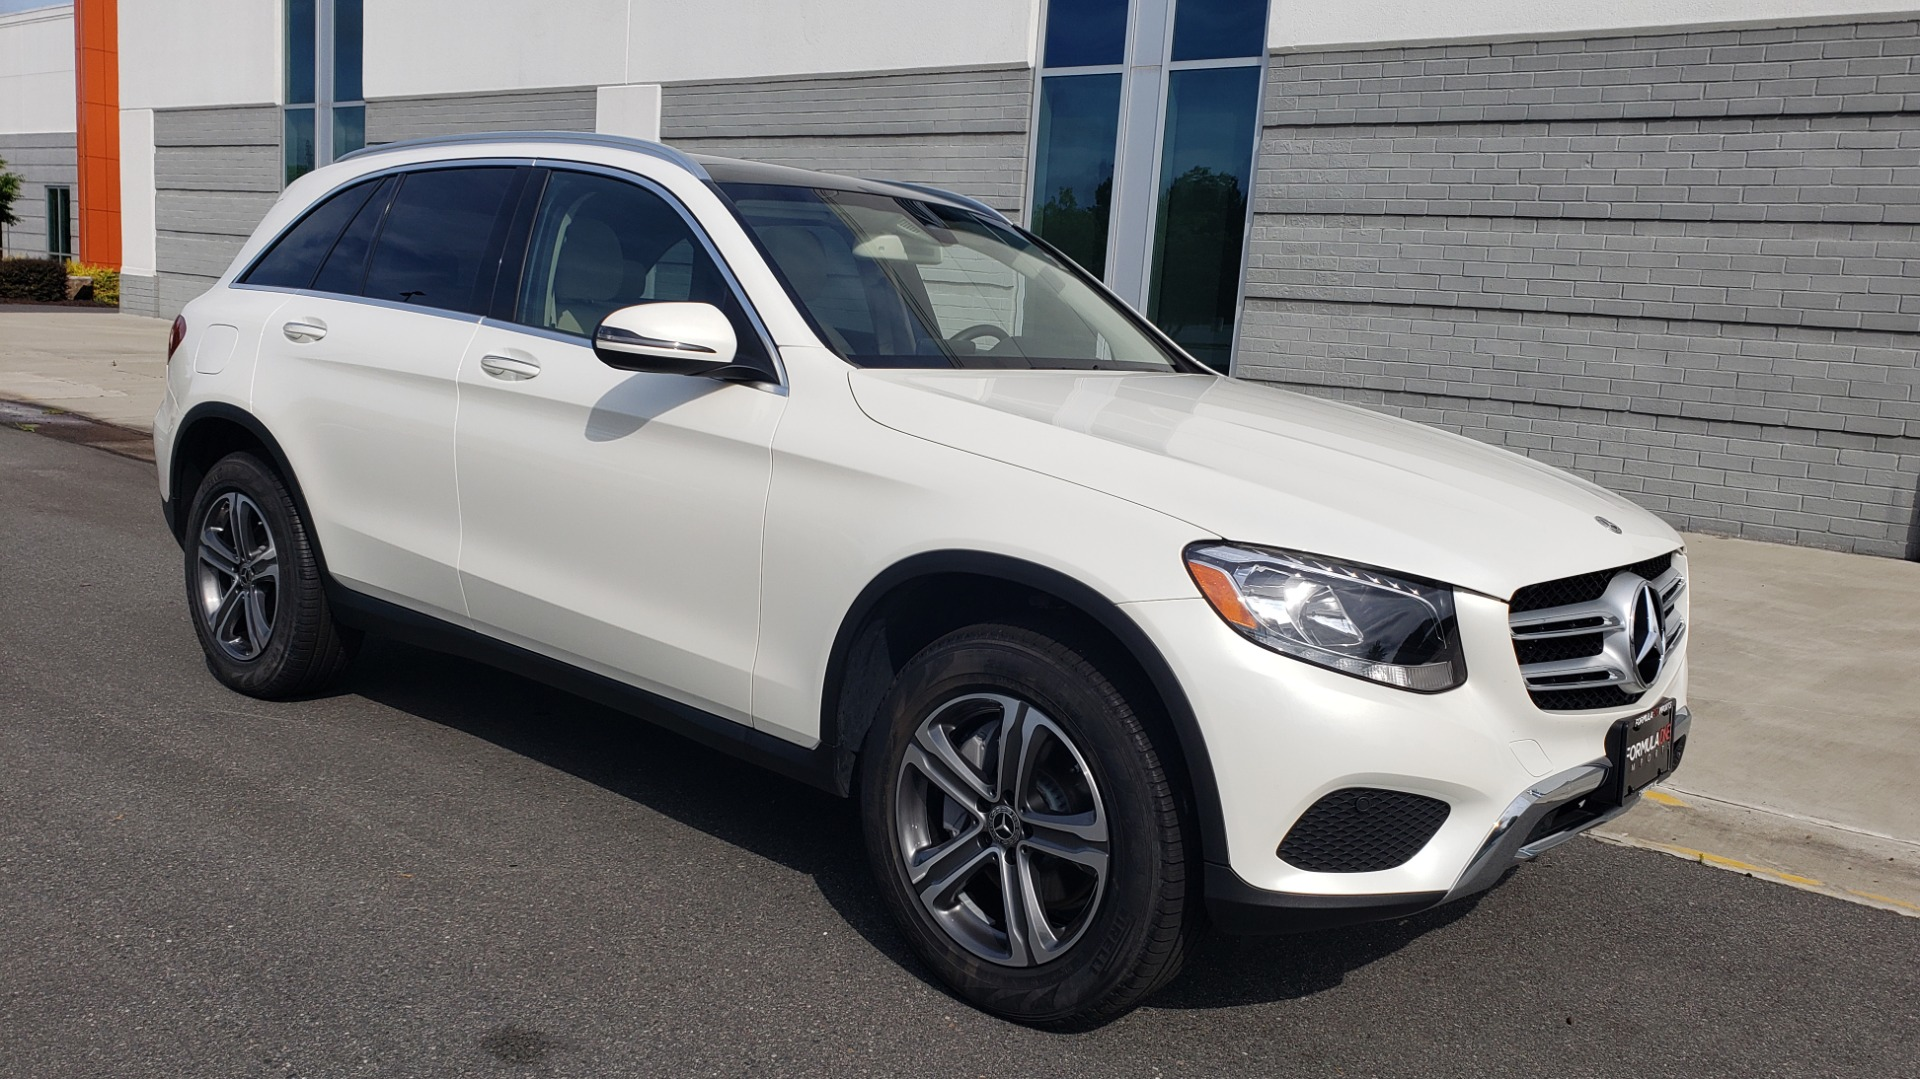 Used 2018 Mercedes-Benz GLC 300 4MATIC / PREM PKG / PANO-ROOF / APPLE / REARVIEW for sale $33,397 at Formula Imports in Charlotte NC 28227 6